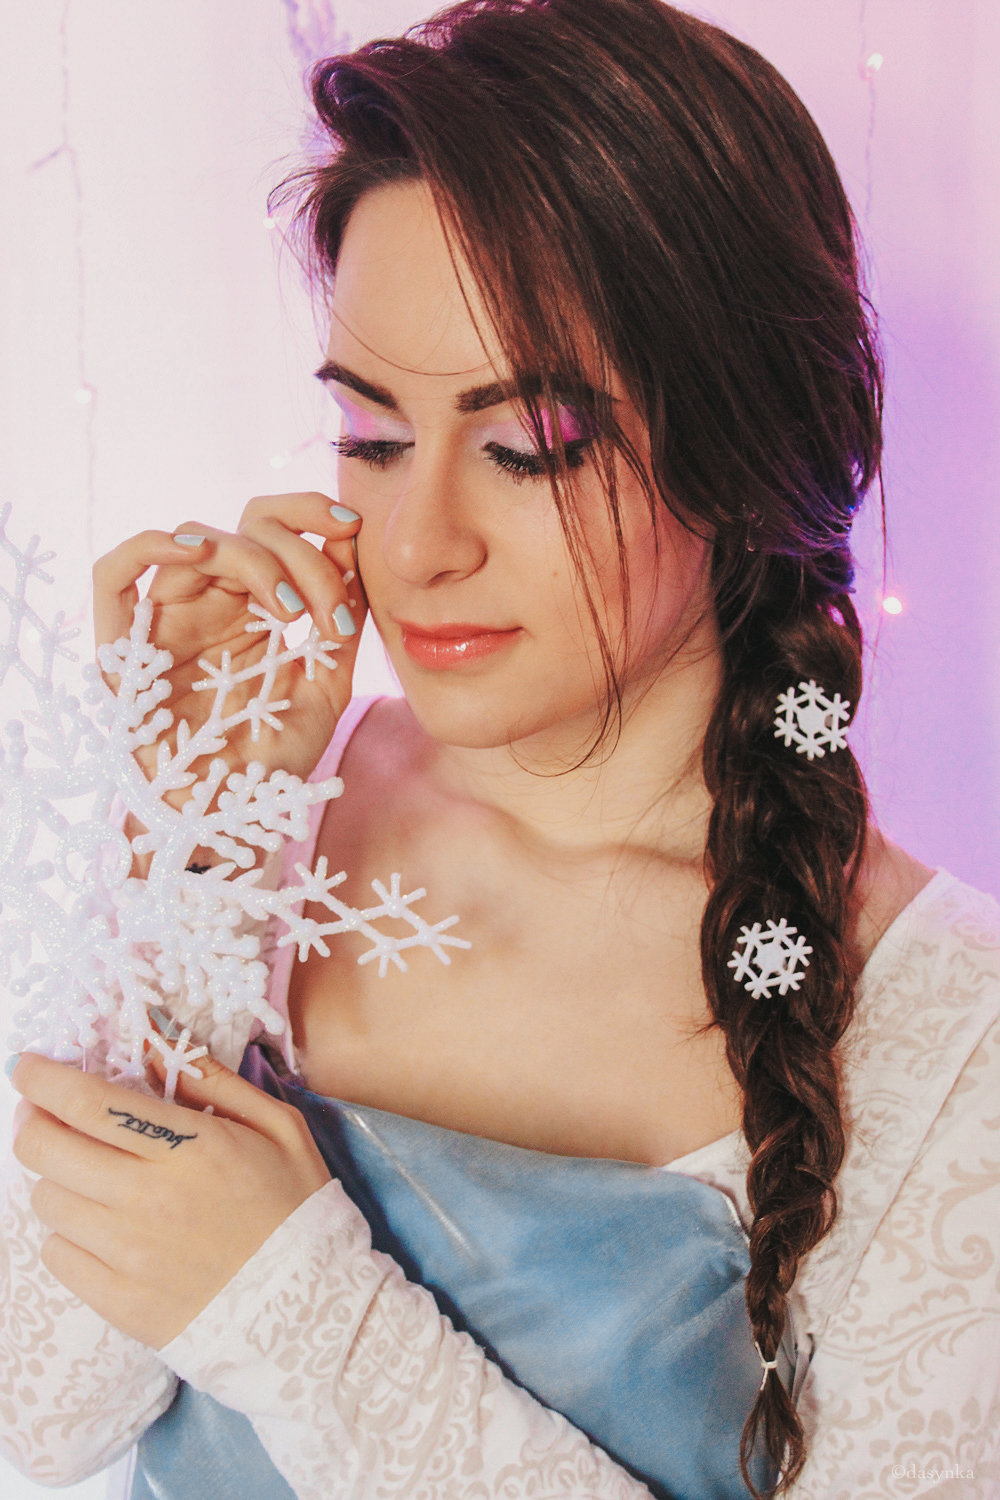 dasynka-fashion-blog-blogger-influencer-inspiration-shooting-model-globettrotter-travel-girl-lookbook-instagram-long-hair-street-style-casual-italy-lifestyle-outfit-elsa-frozen-cosplay-cosplayer-disney-carnival-mask-princess-make-up-costume-ideas-artist